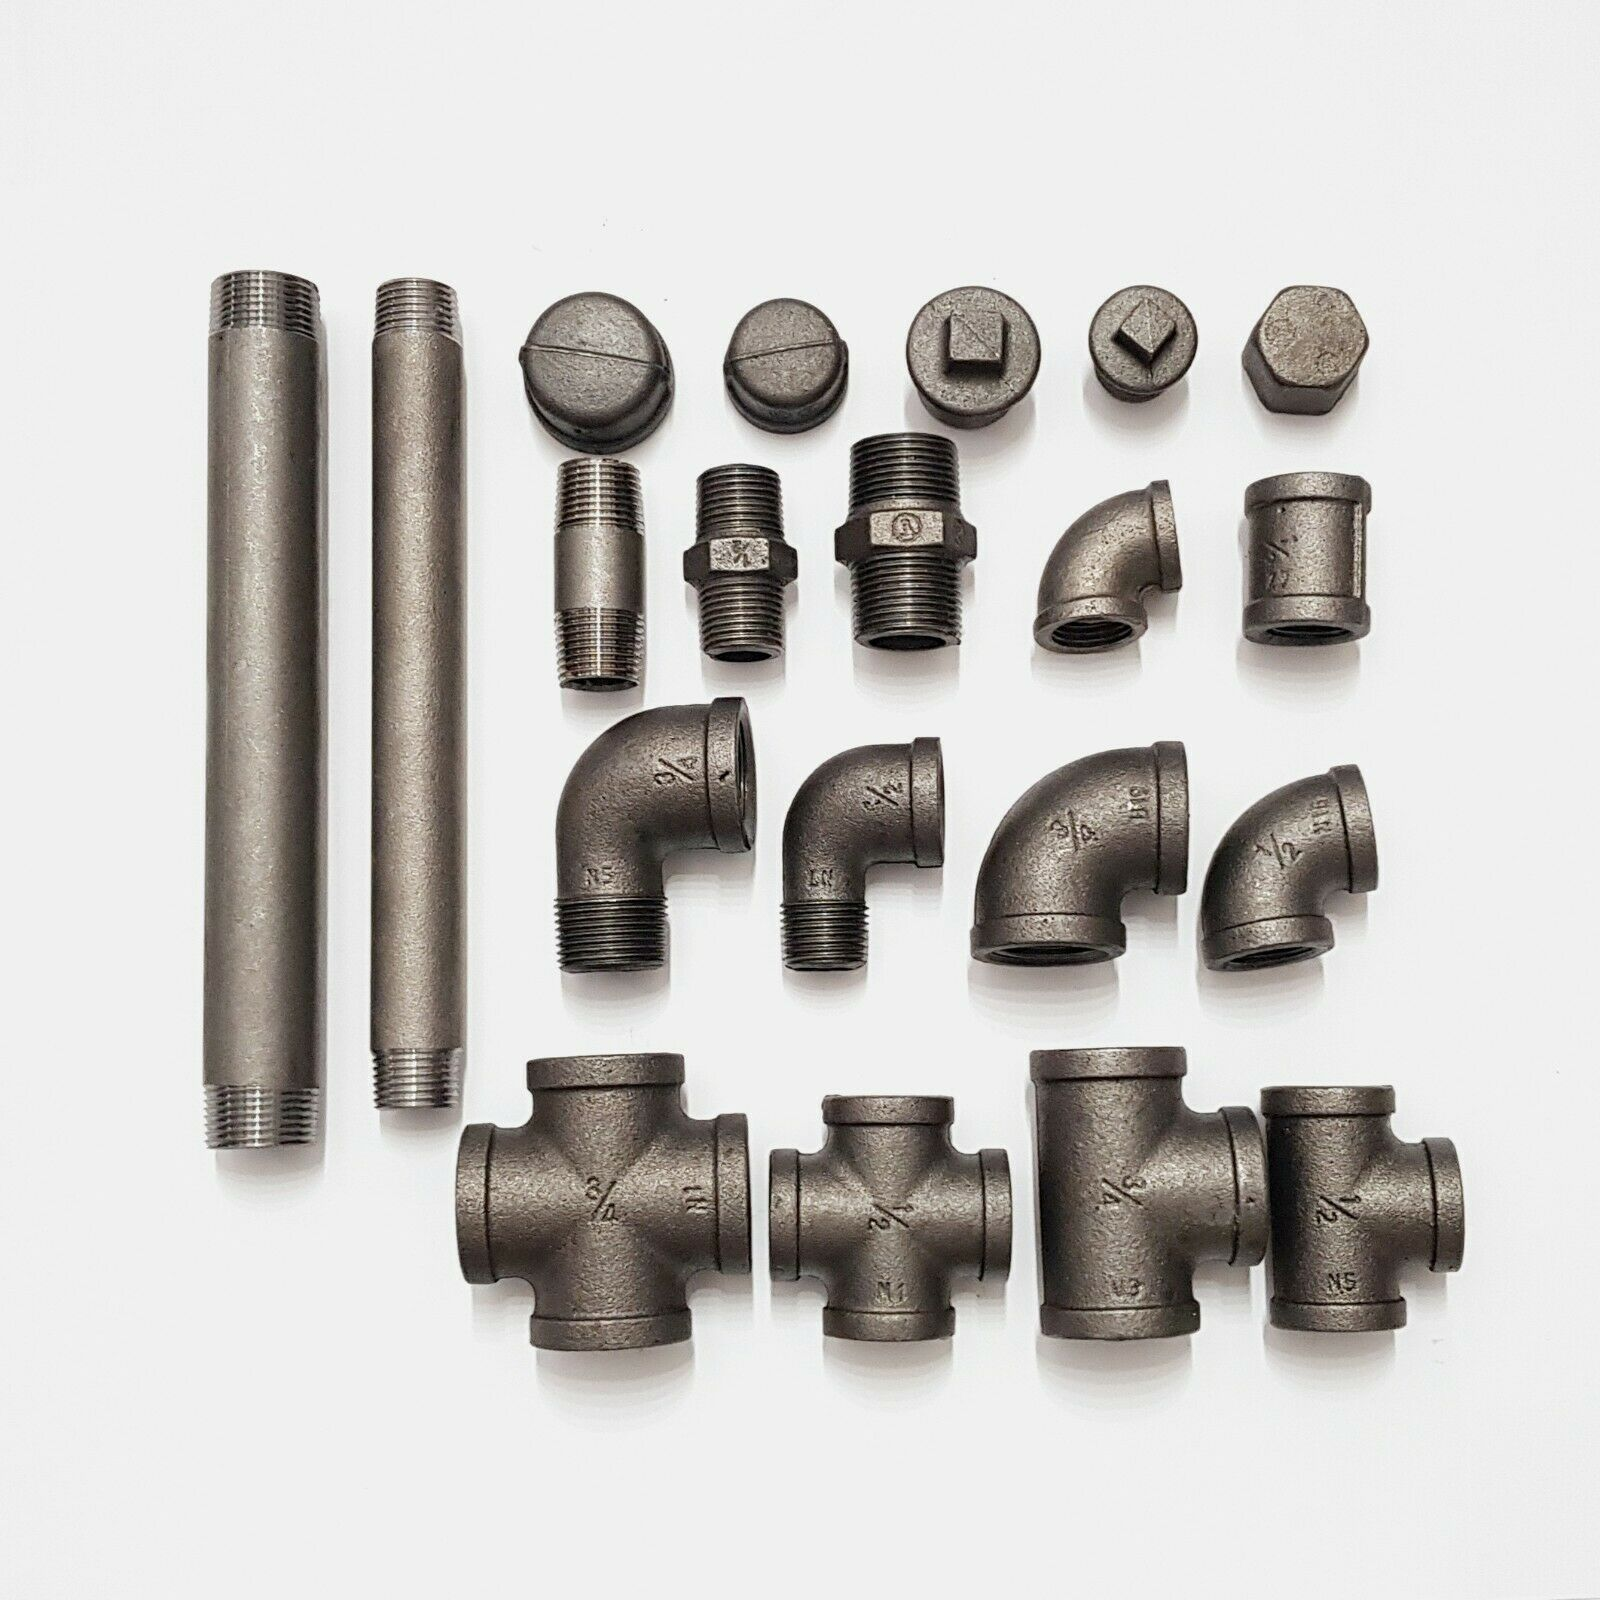 BLACK MALLEABLE CAST IRON PIPE FITTINGS BSP &STEEL PIPES 1/2